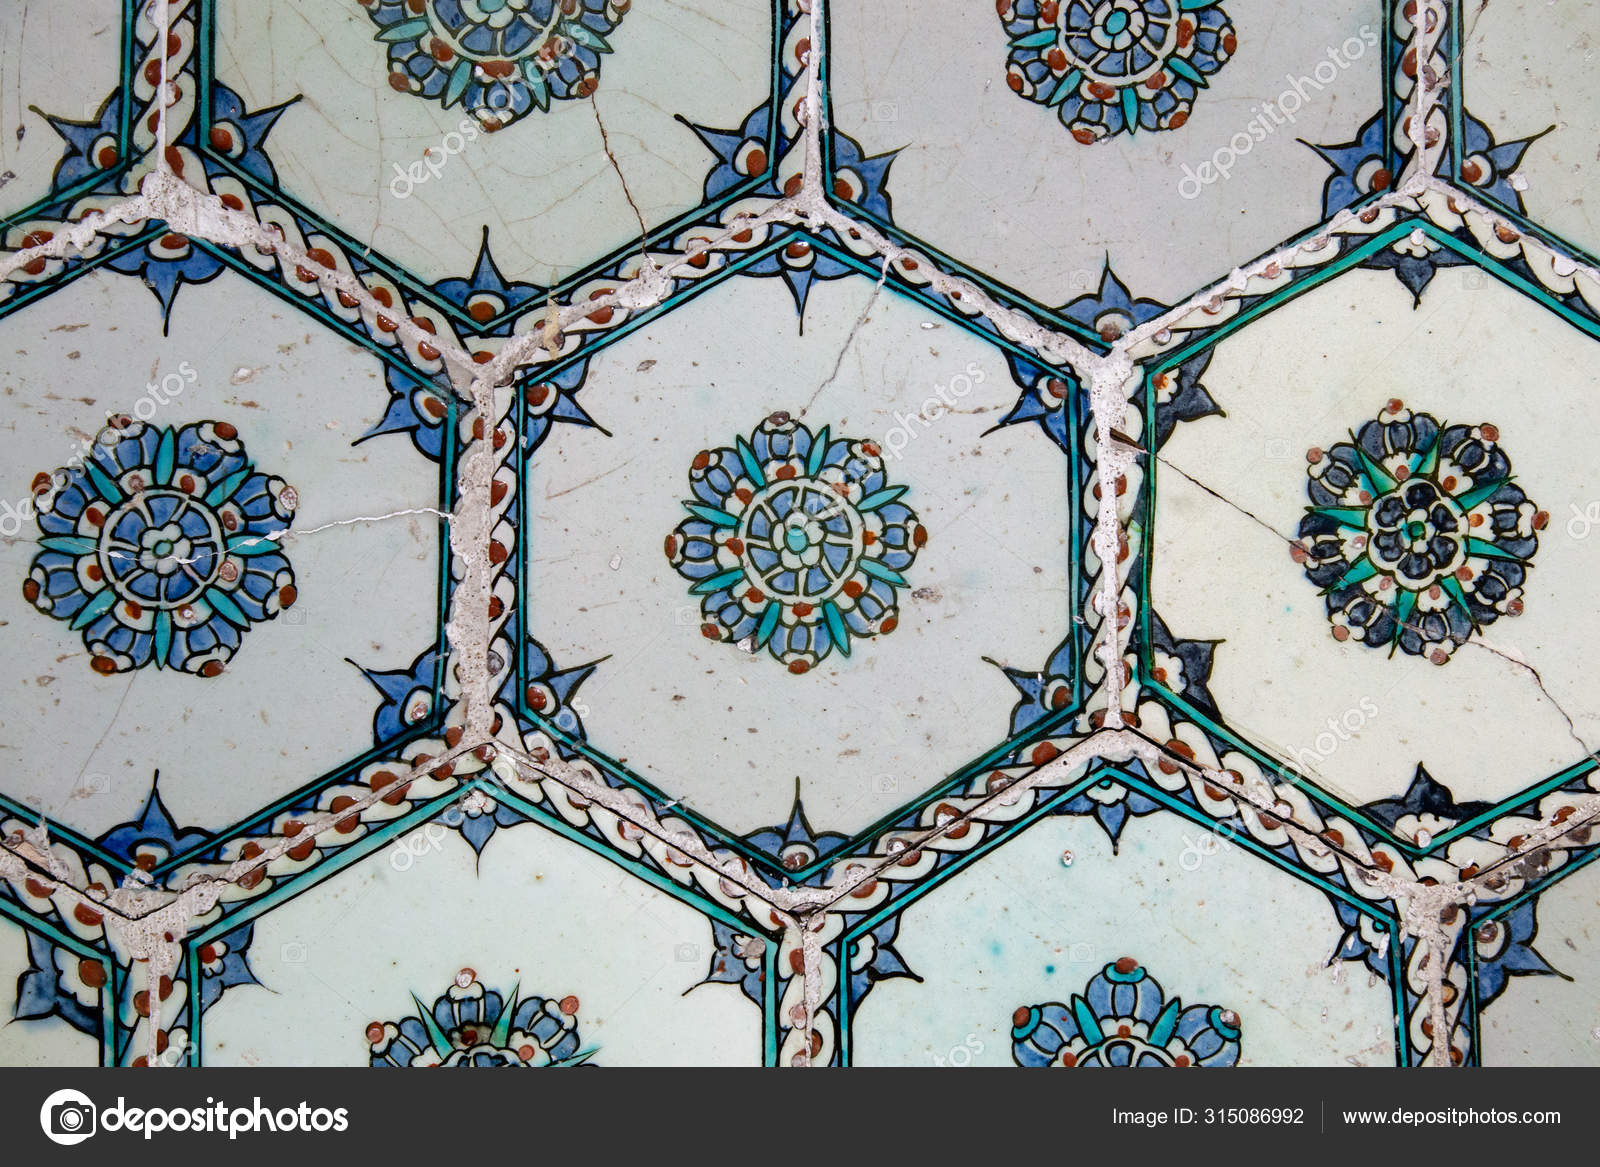 handmade old turkish blue ceramic tiles on the wall in istanbul city turkey close up ancient ottoman patterned iznik syle design tile composition flower patterns on ceramic tiles stock photo image